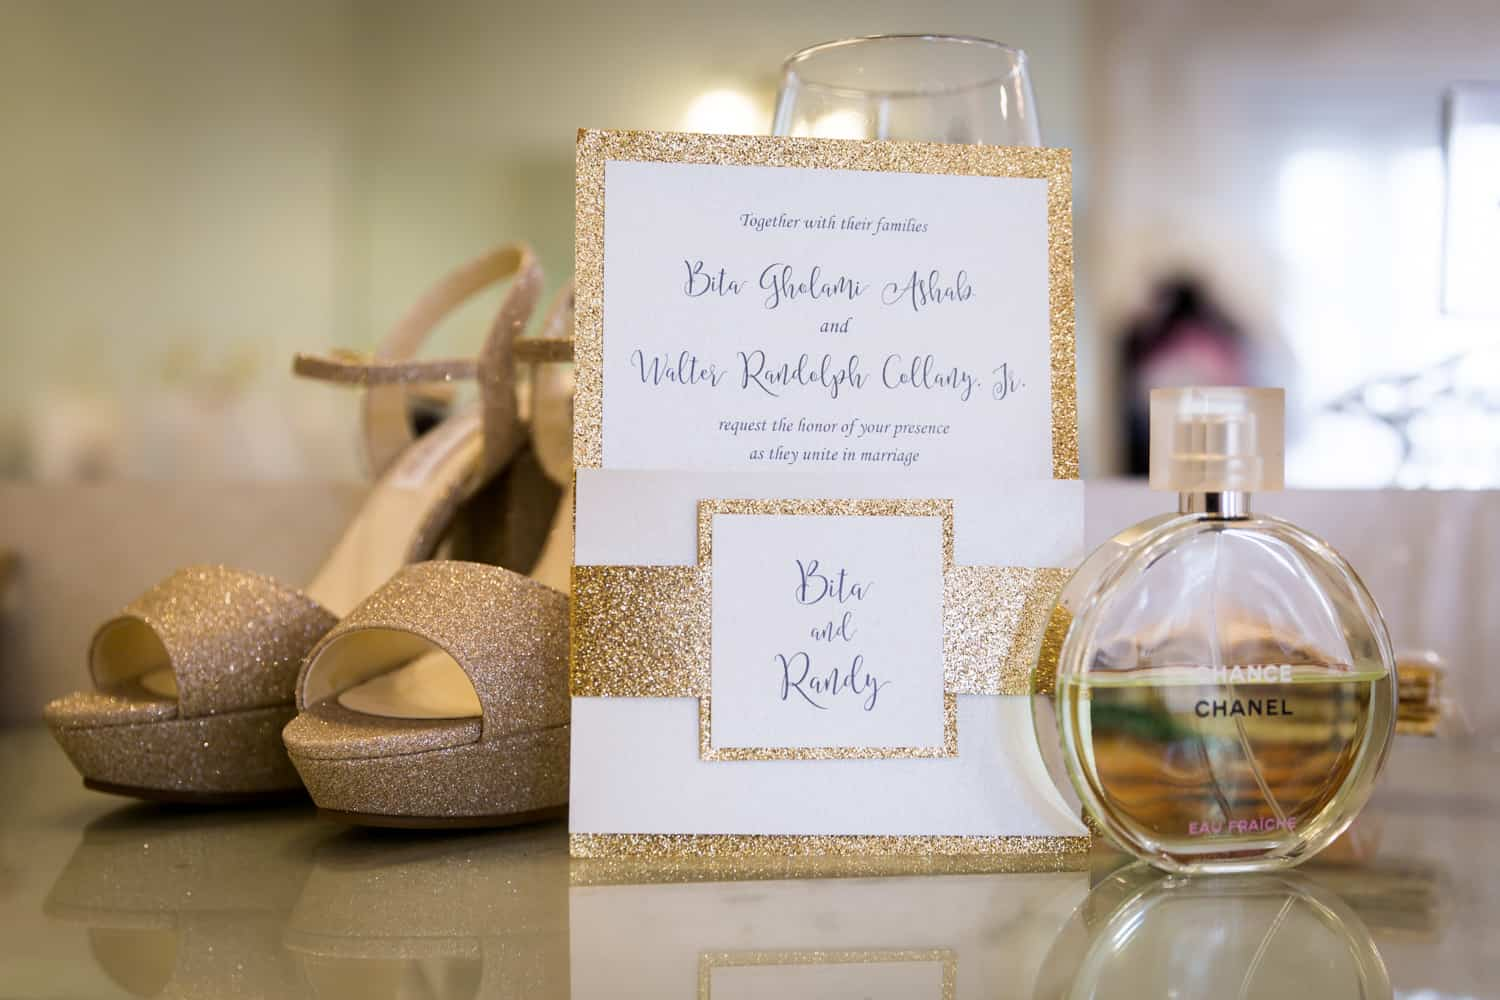 Invitation with gold glitter and perfume bottle for an article on wedding cost cutting tips